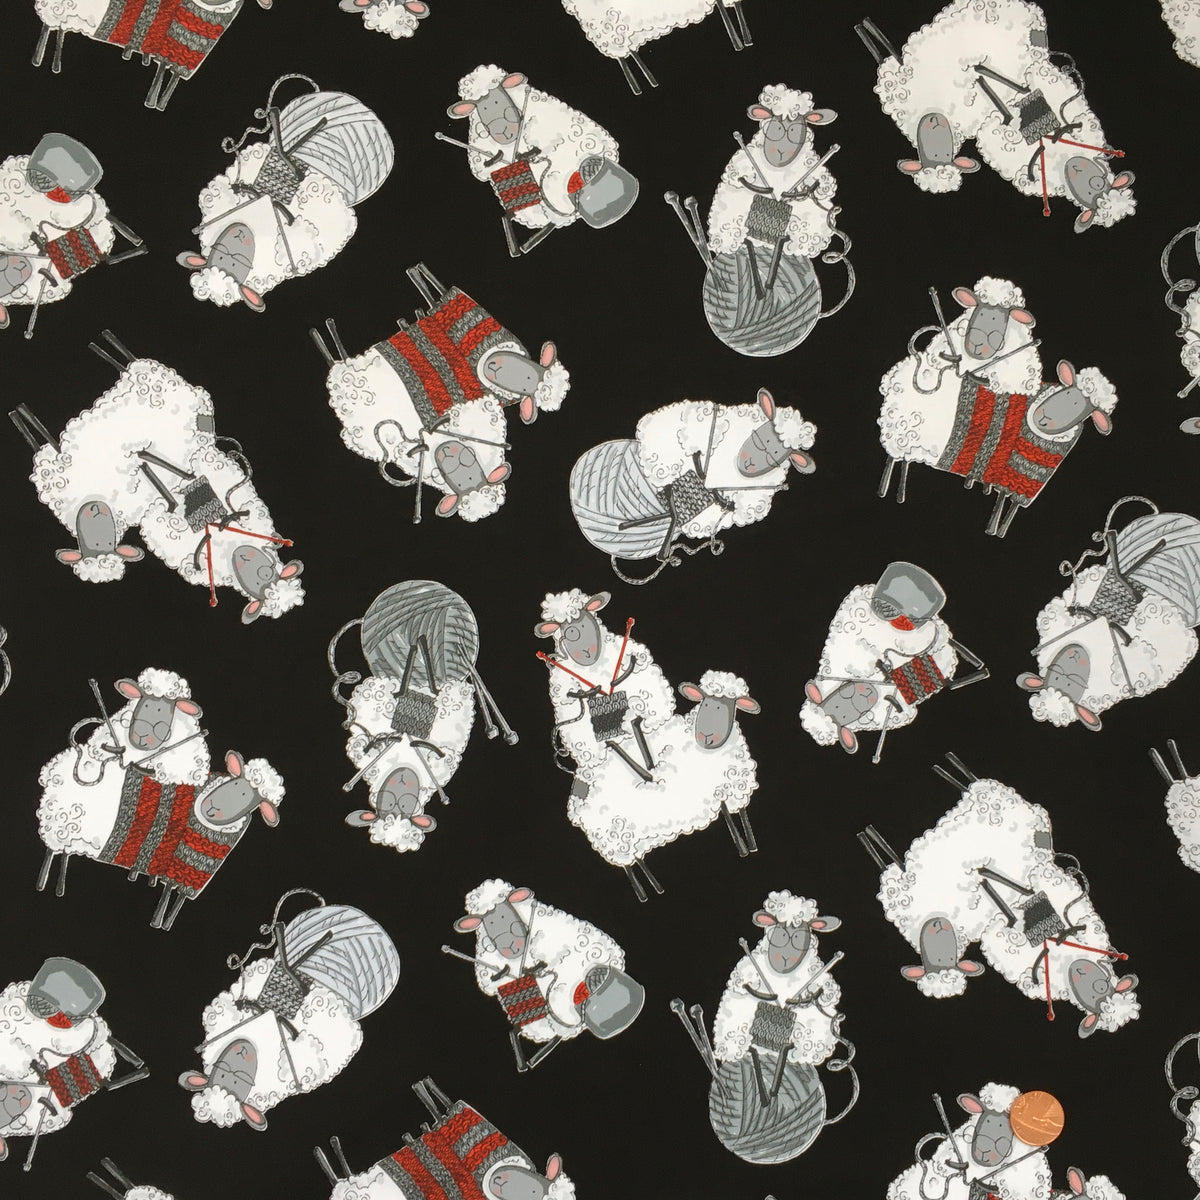 Knitting Sheep black 100% Premium Cotton by Timeless Treasures Per 1/2 Metre